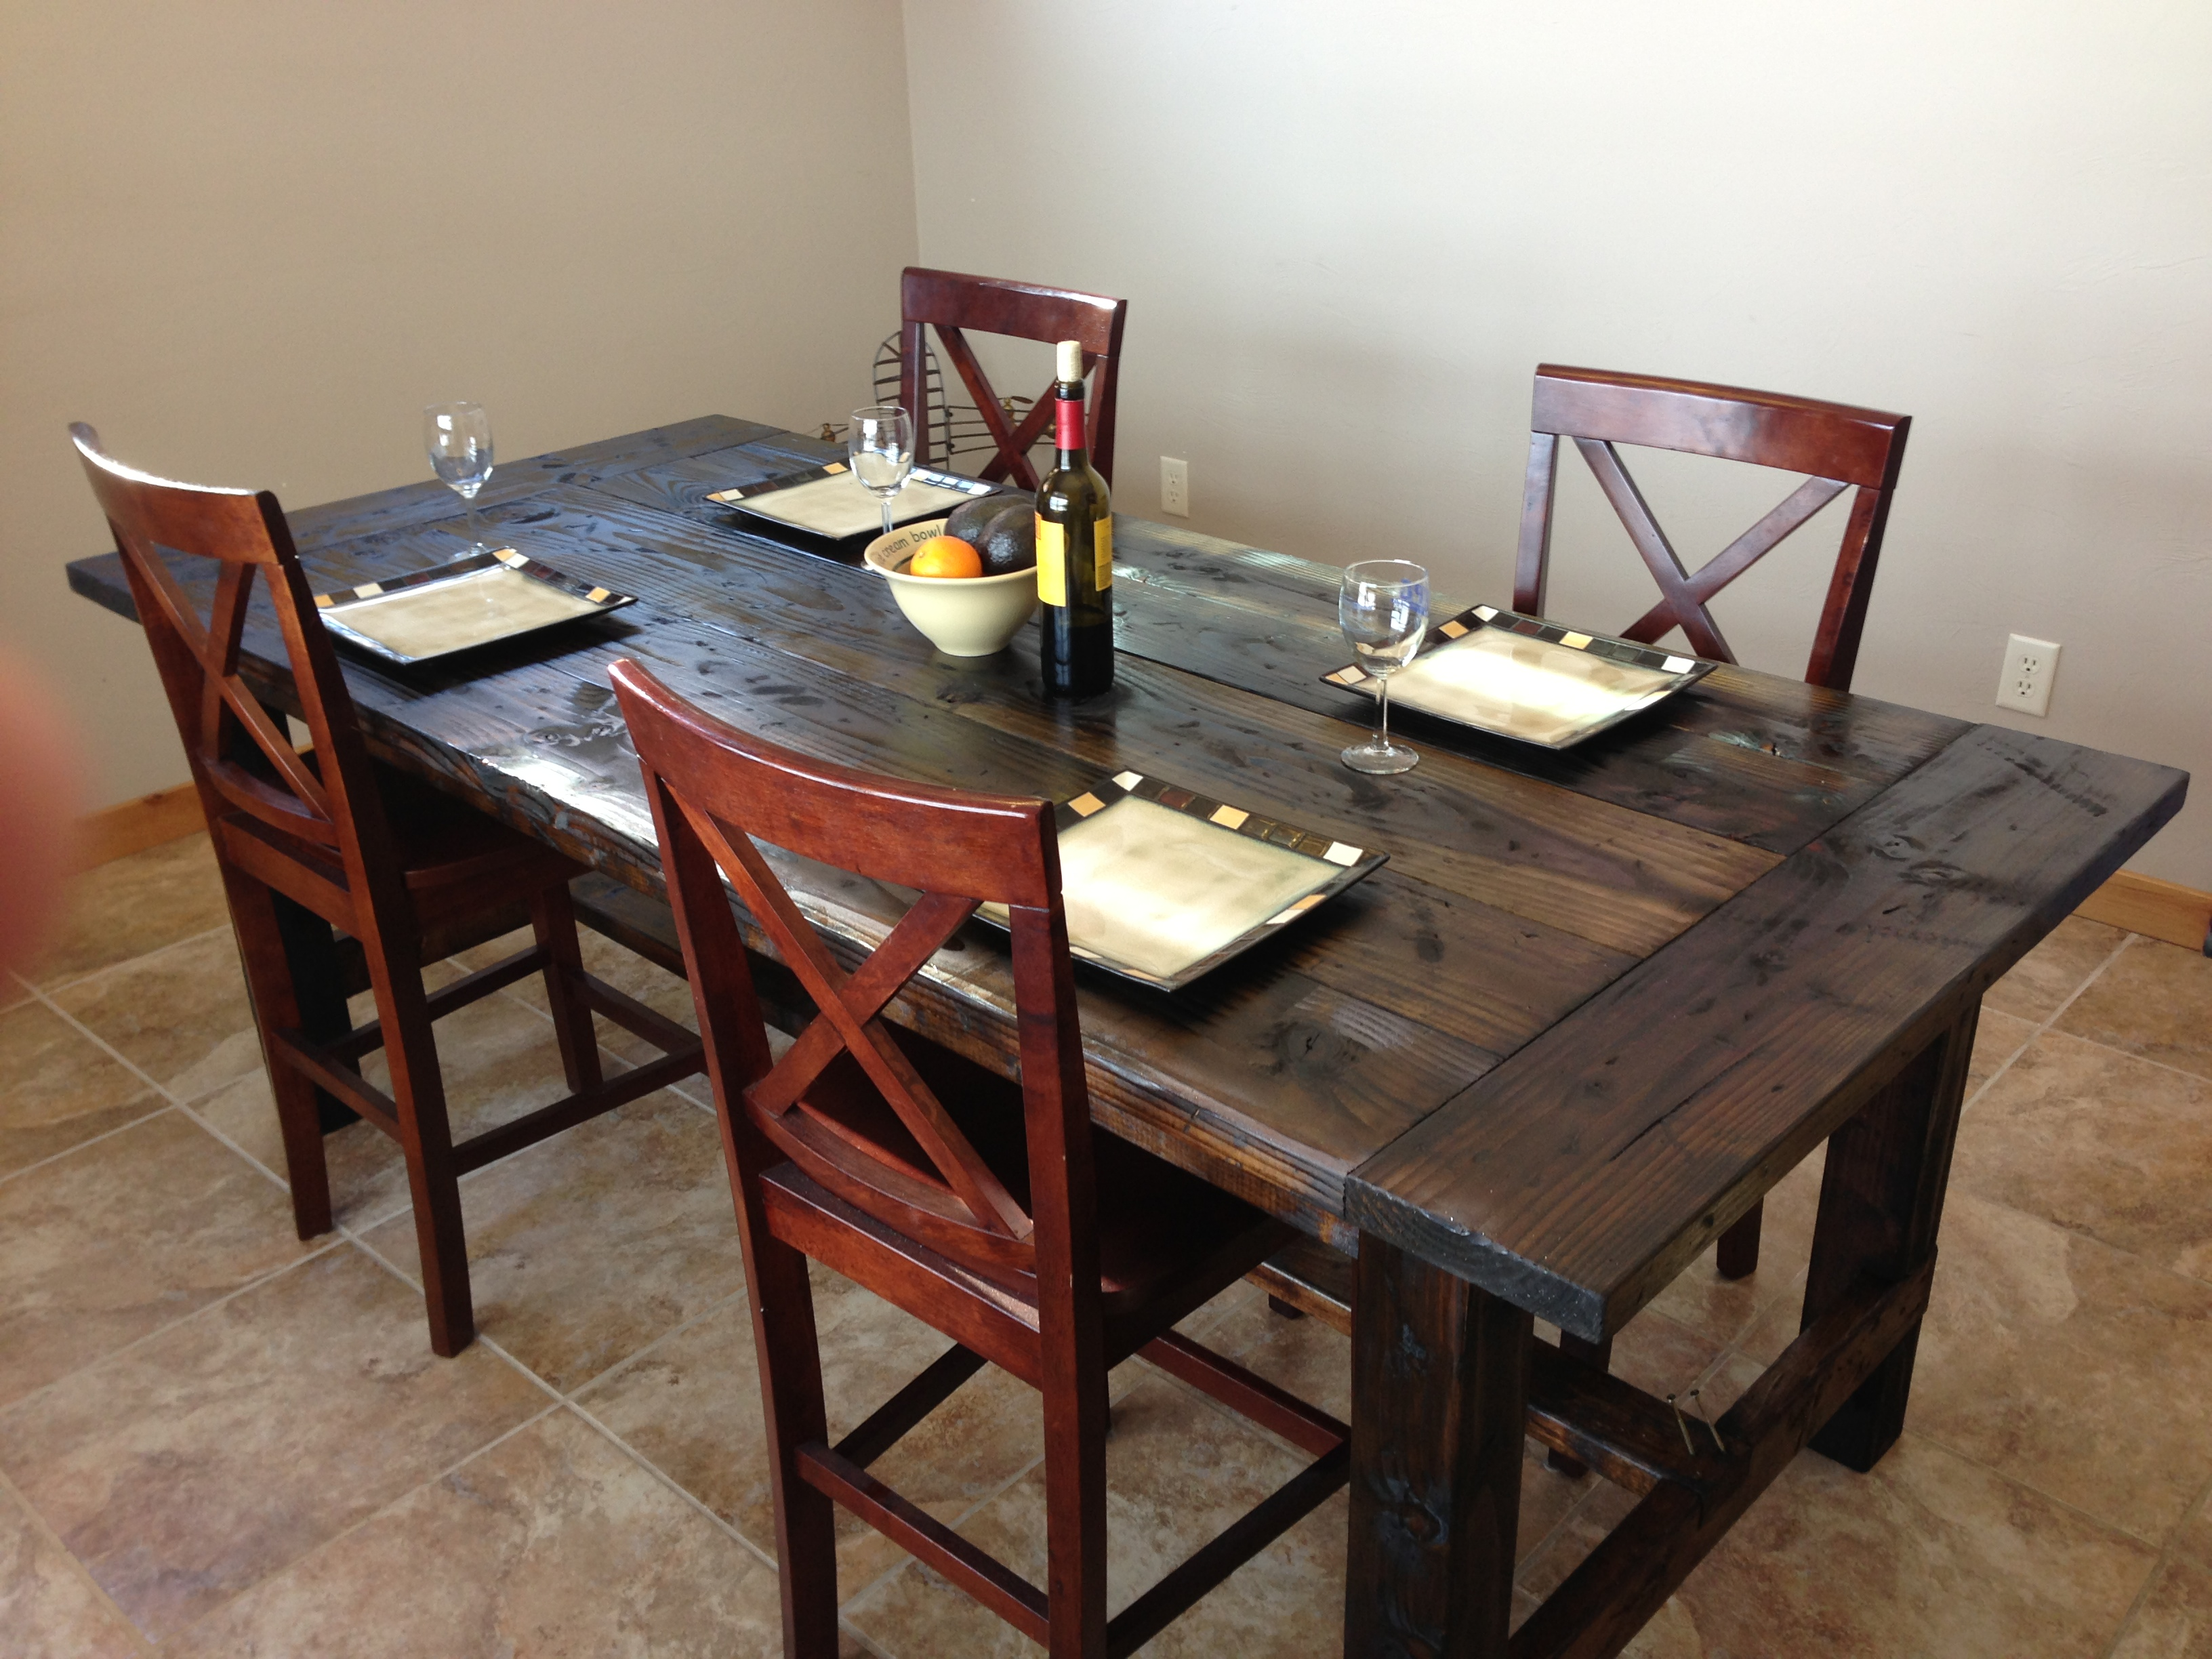 Ana white farm style dining table diy projects for Farmhouse dining table